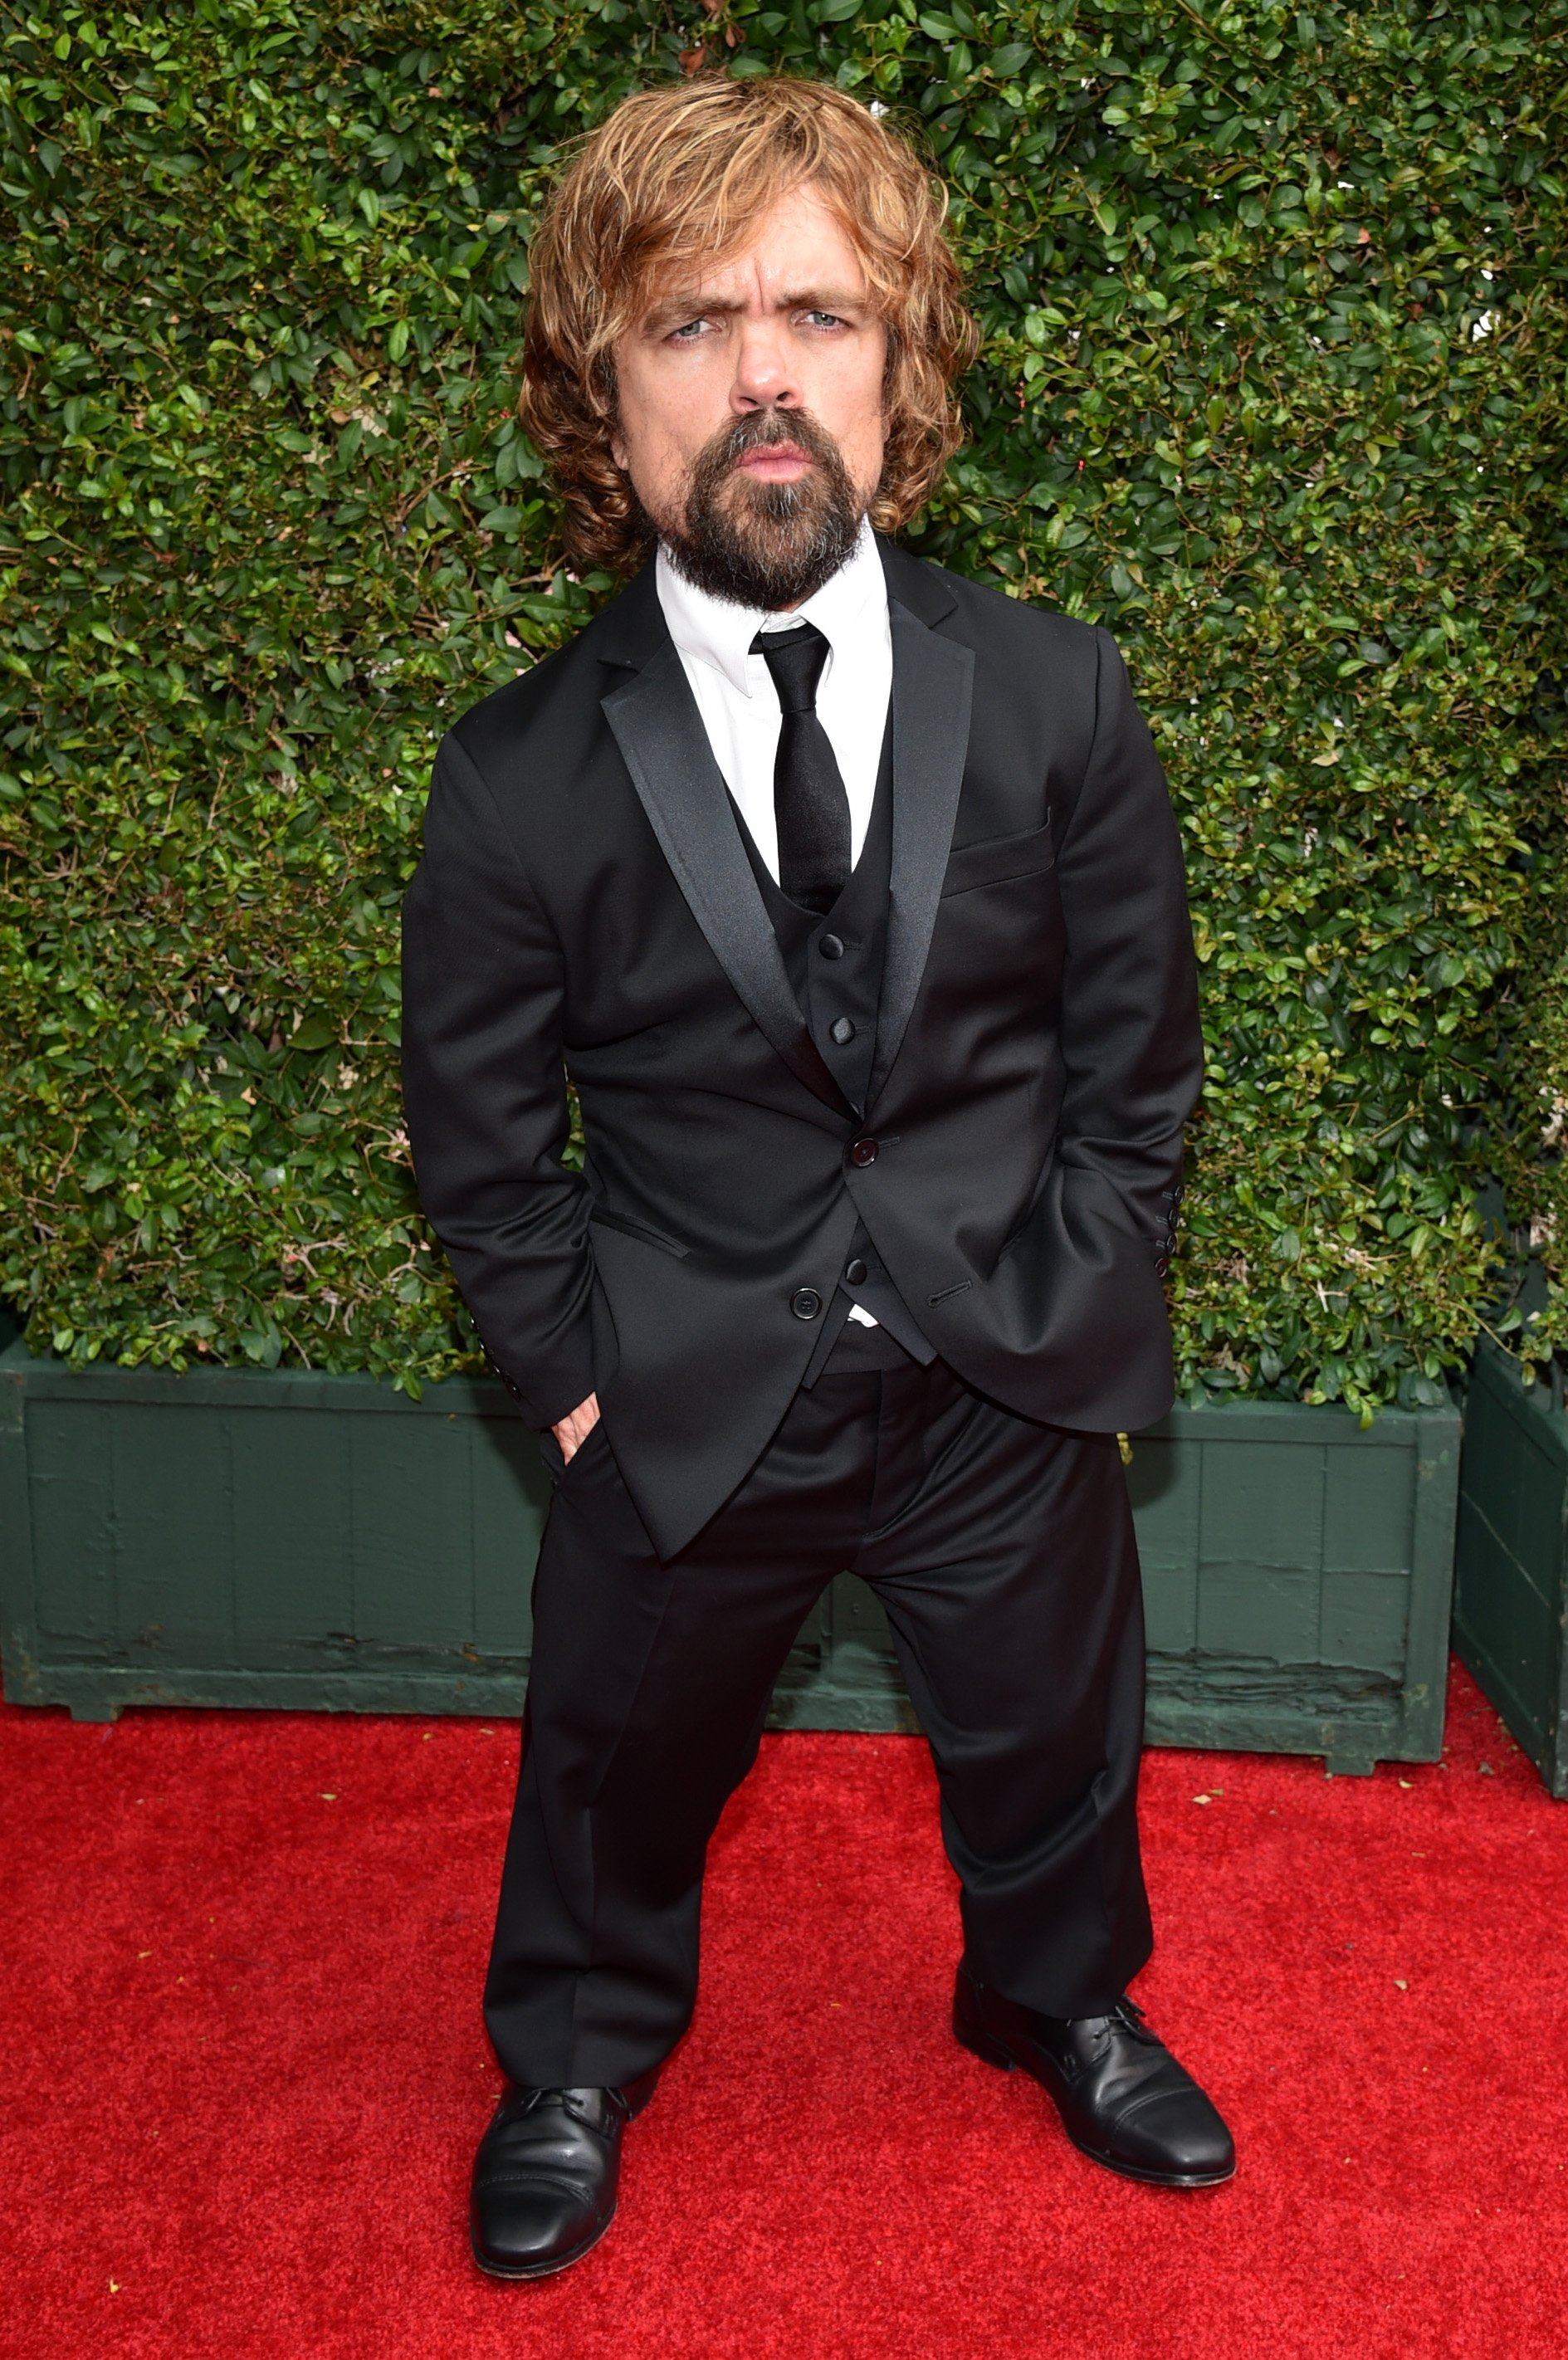 Peter Dinklage arrives at the 66th Primetime Emmy Awards at the Nokia Theatre L.A. Live on Monday, Aug. 25, 2014, in Los Angeles.